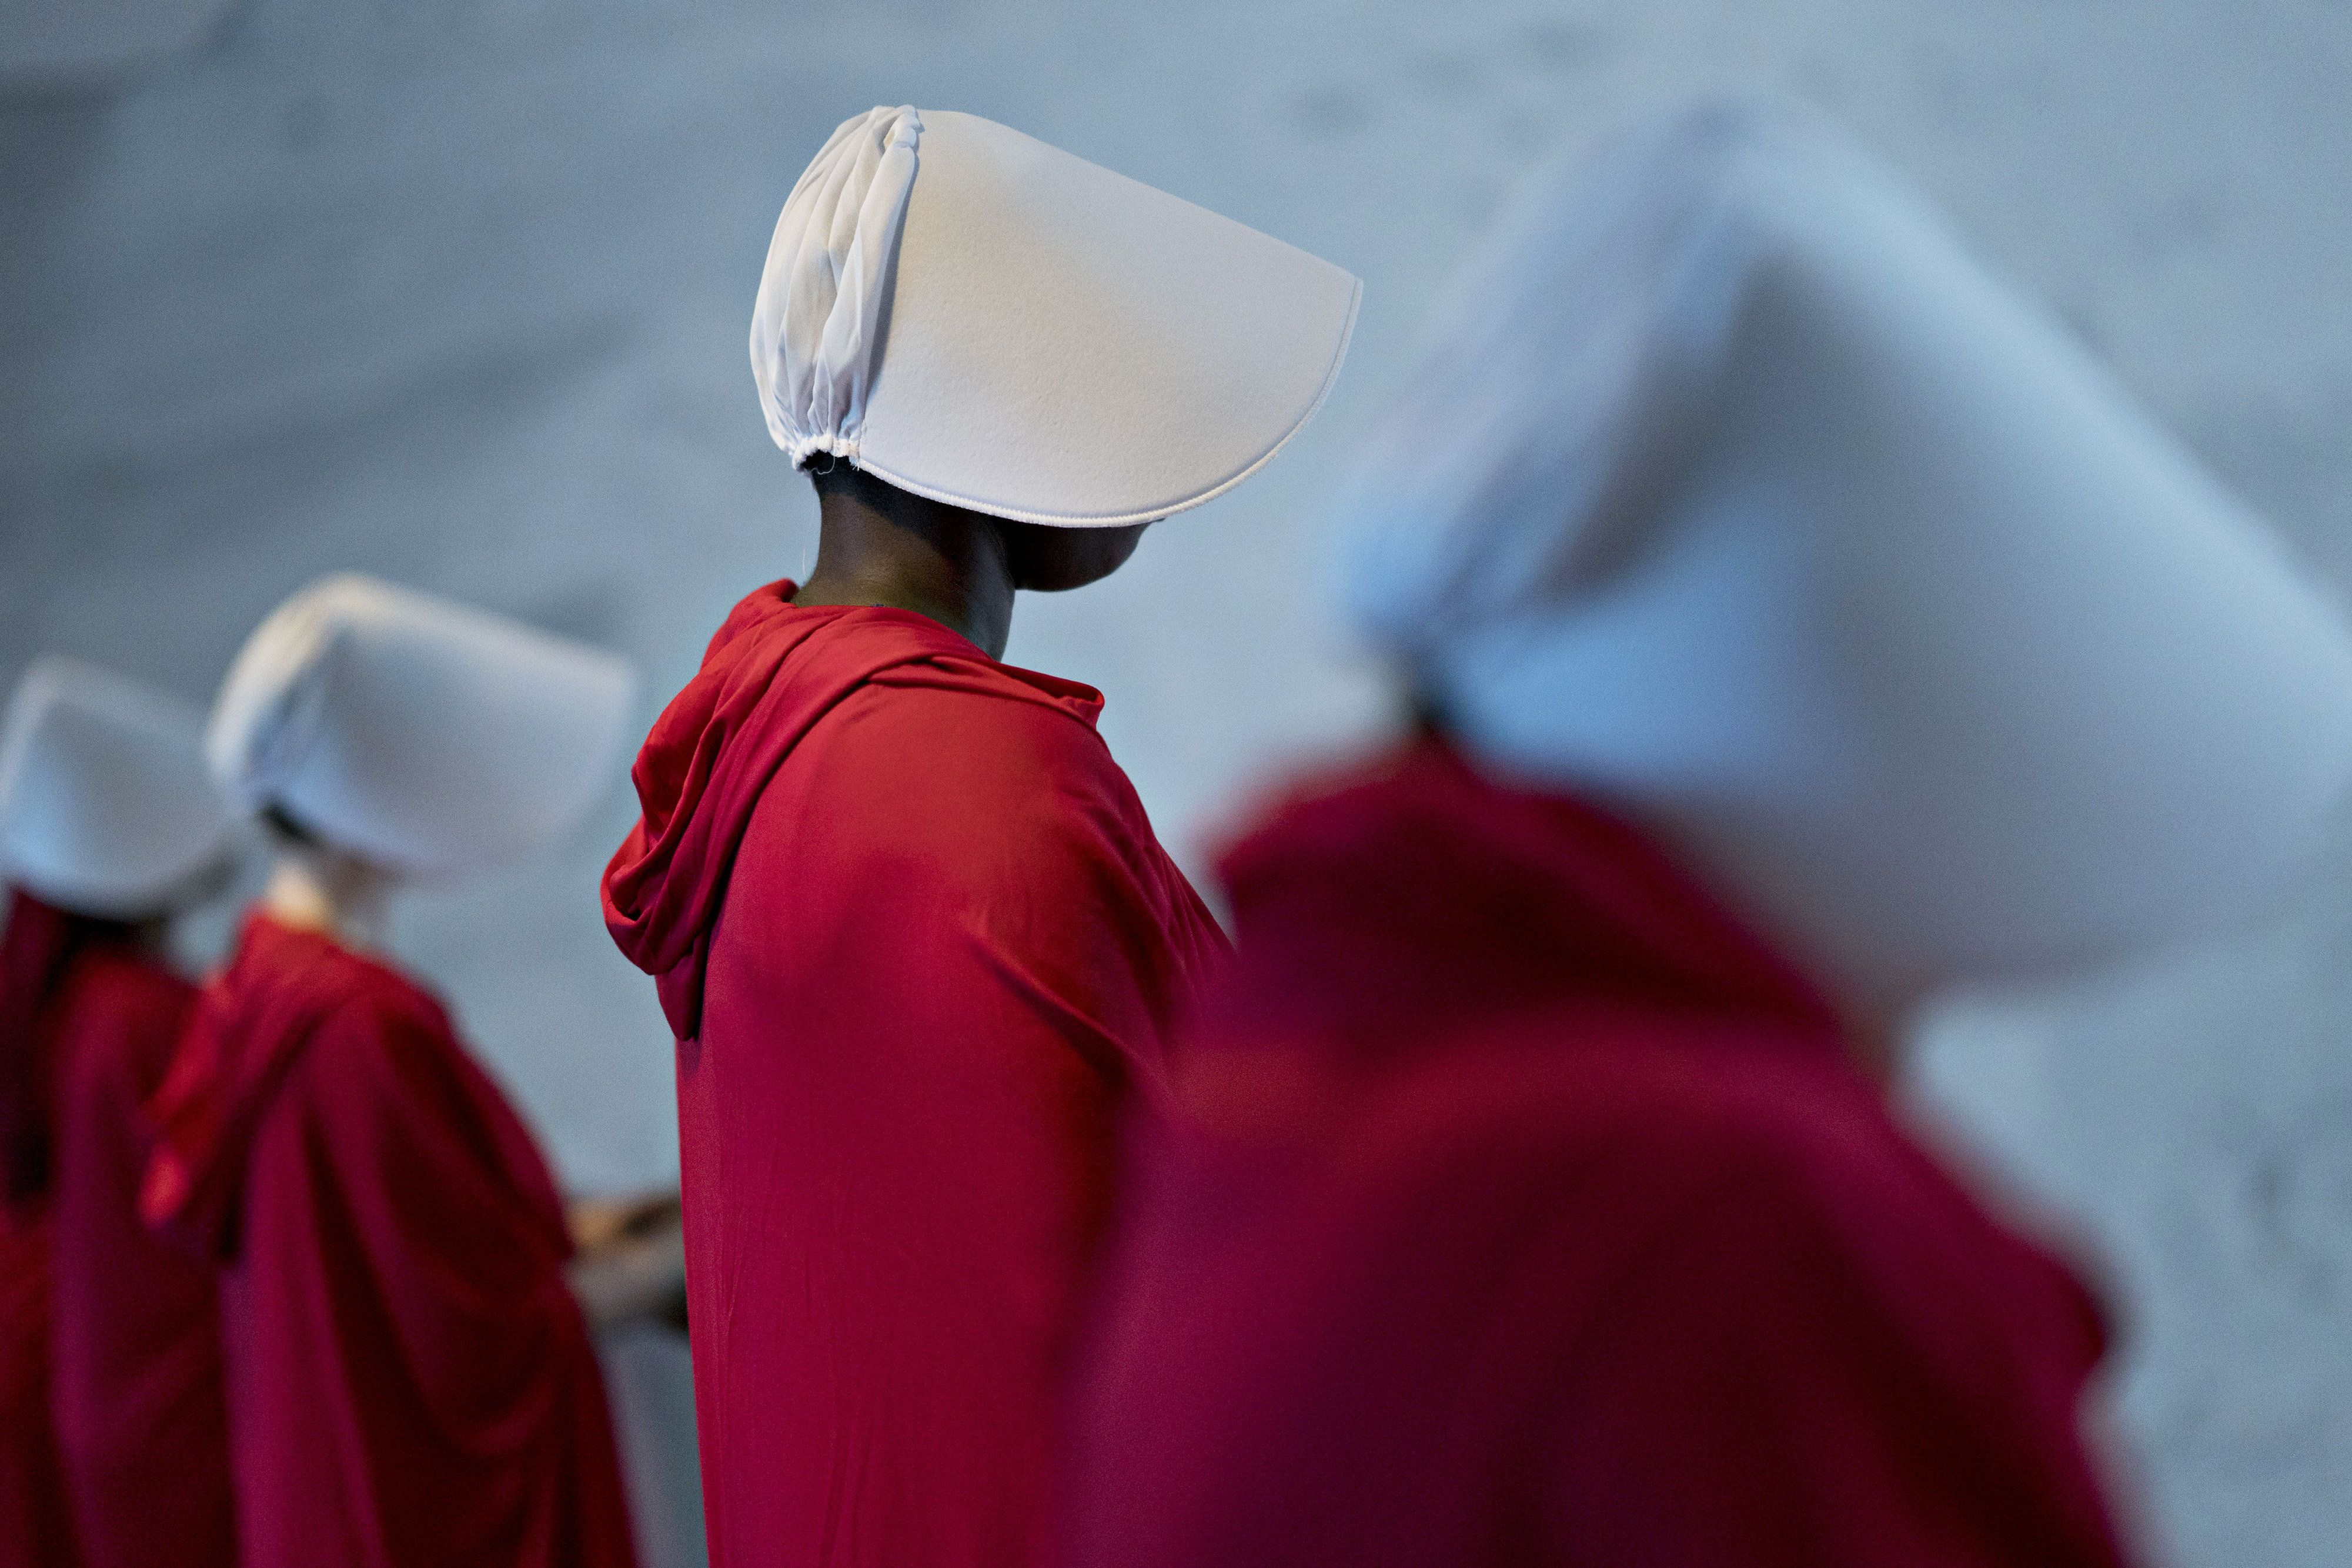 Bloomberg Best of the Year 2018: Demonstrators dressed in 'Handmaid's Tale' costumes stand in the Dirksen Senate Office building before a Senate Judiciary Committee confirmation hearing for Brett Kavanaugh, U.S. Supreme Court associate justice nominee for U.S. President Donald Trump, not pictured, in Washington, D.C., U.S., on Tuesday, Sept. 4, 2018. Photographer: Andrew Harrer/Bloomberg via Getty Images